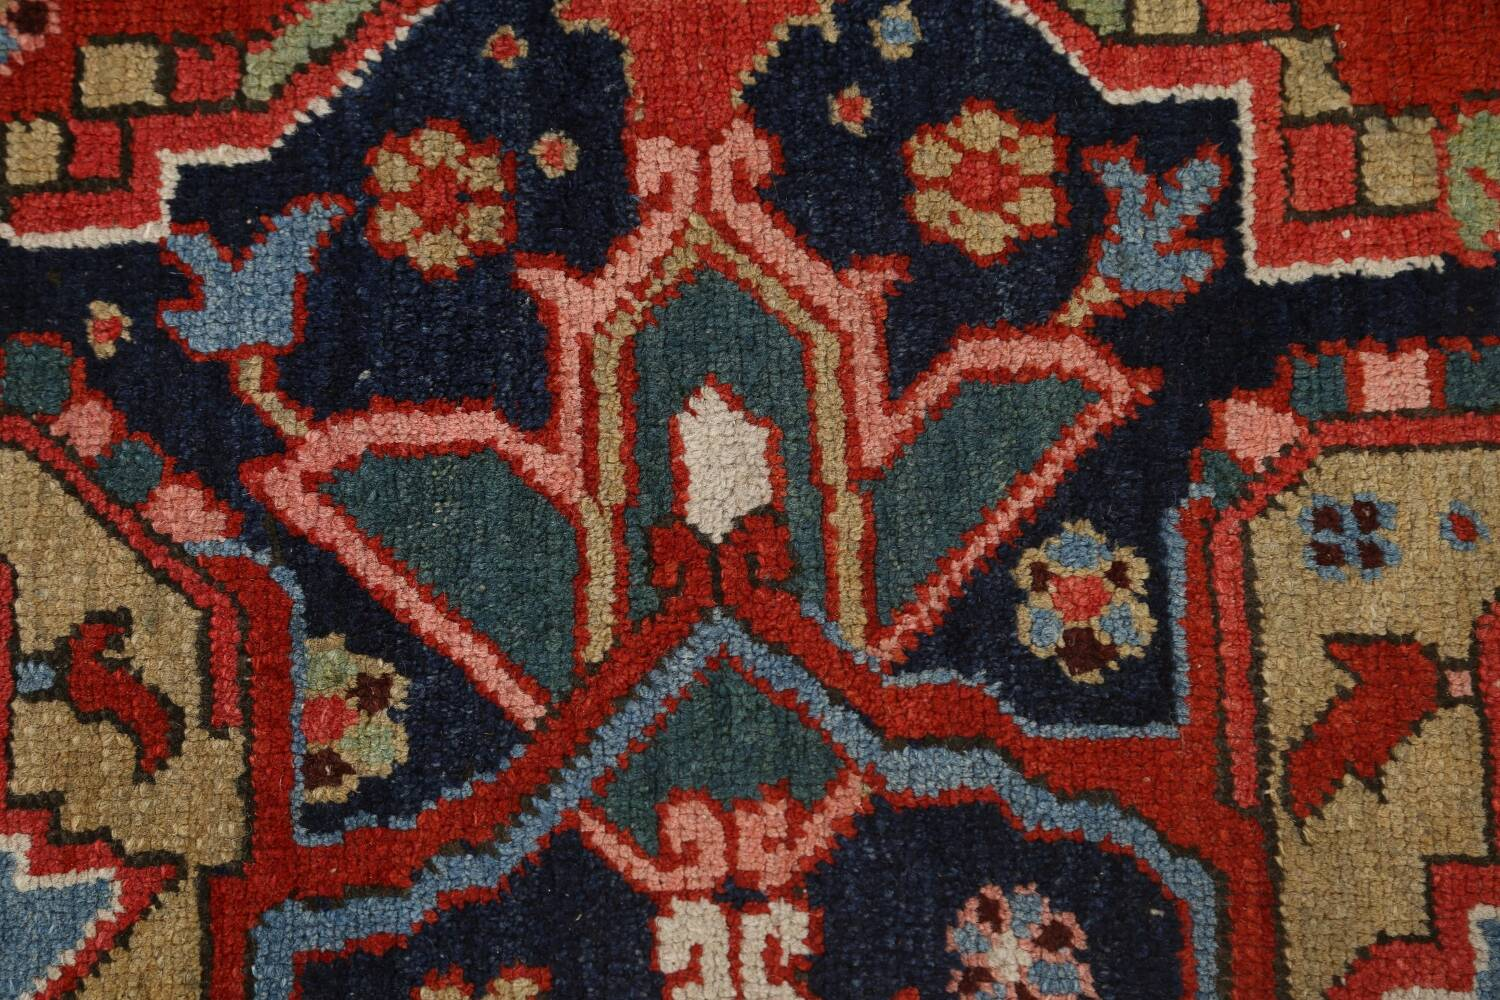 Pre-1900 Antique Vegetable Dye Heriz Serapi Persian Area Rug 10x13 image 9